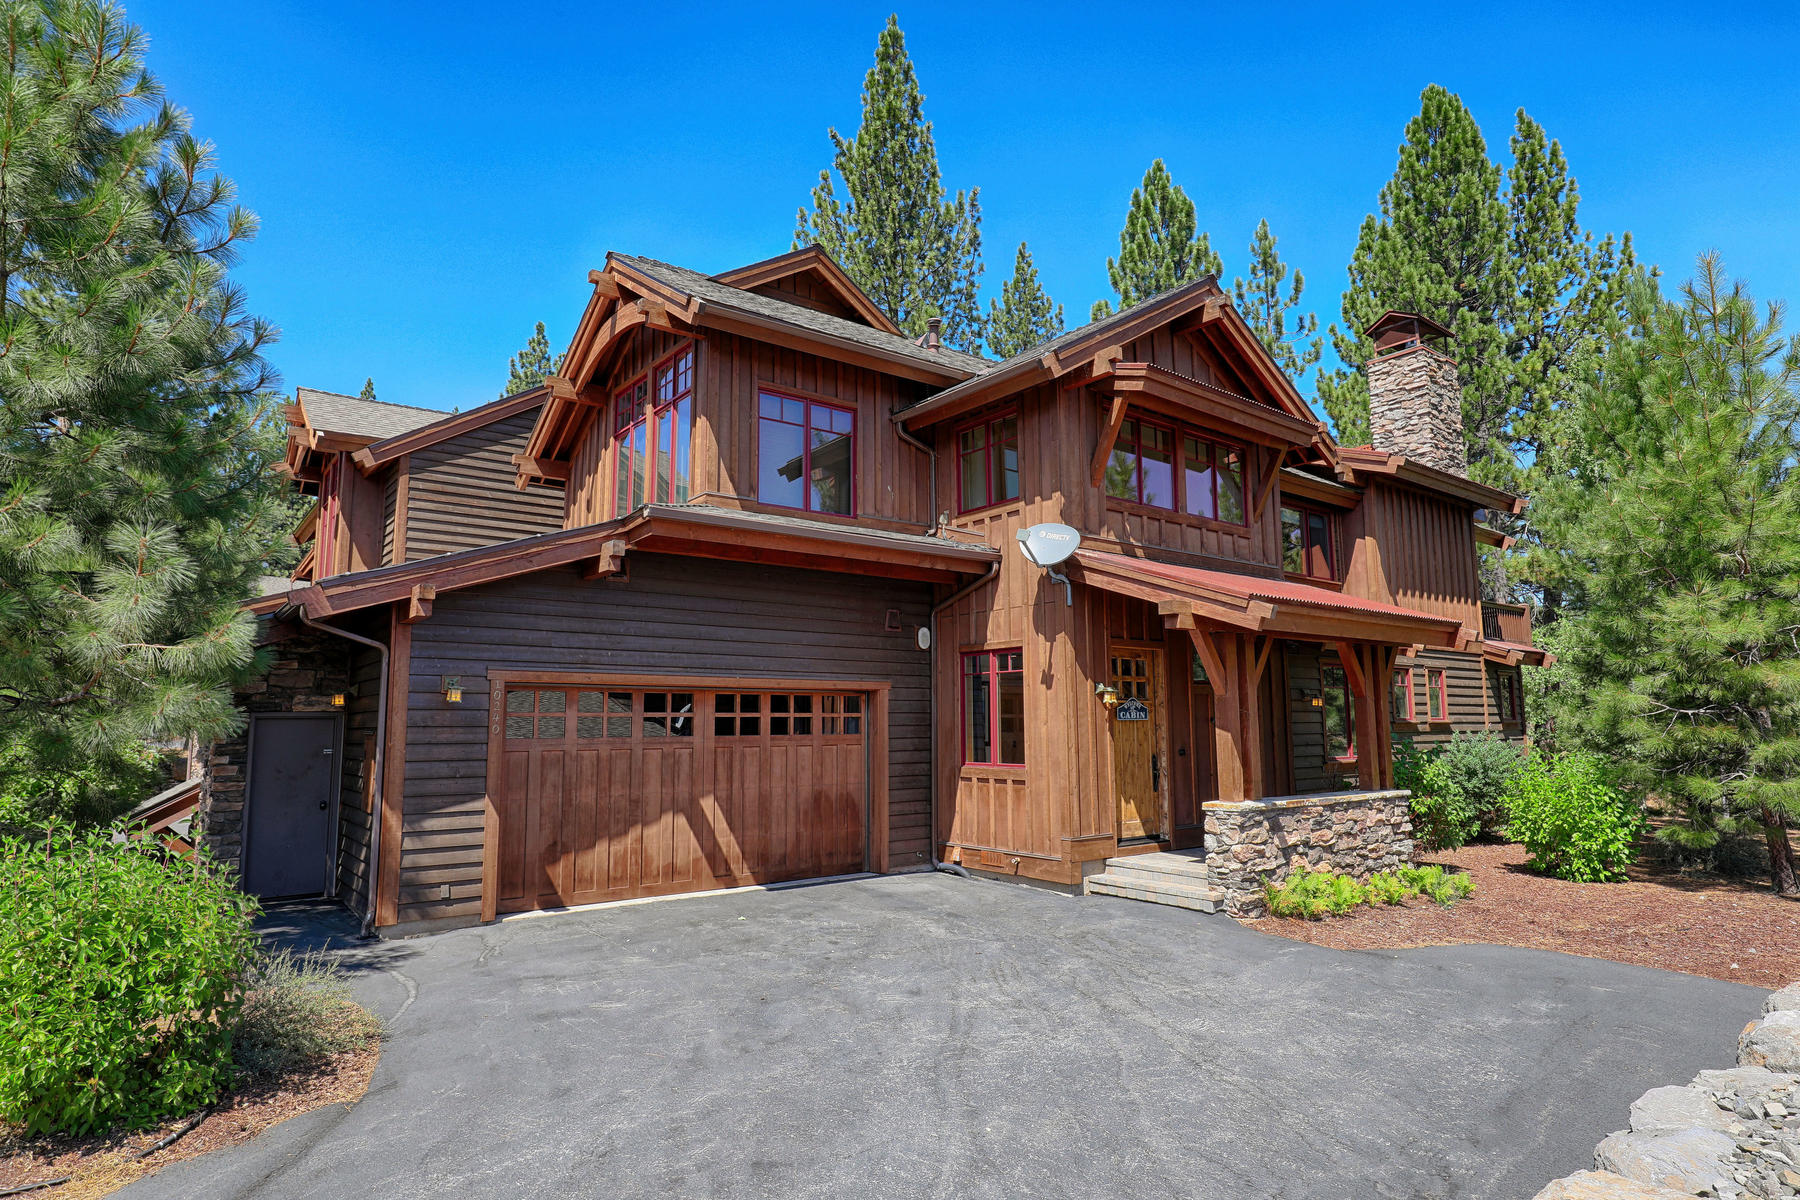 Single Family Homes for Active at 10240 Valmont Trail, Truckee 10240 Valmont Trail Truckee, California 96161 United States